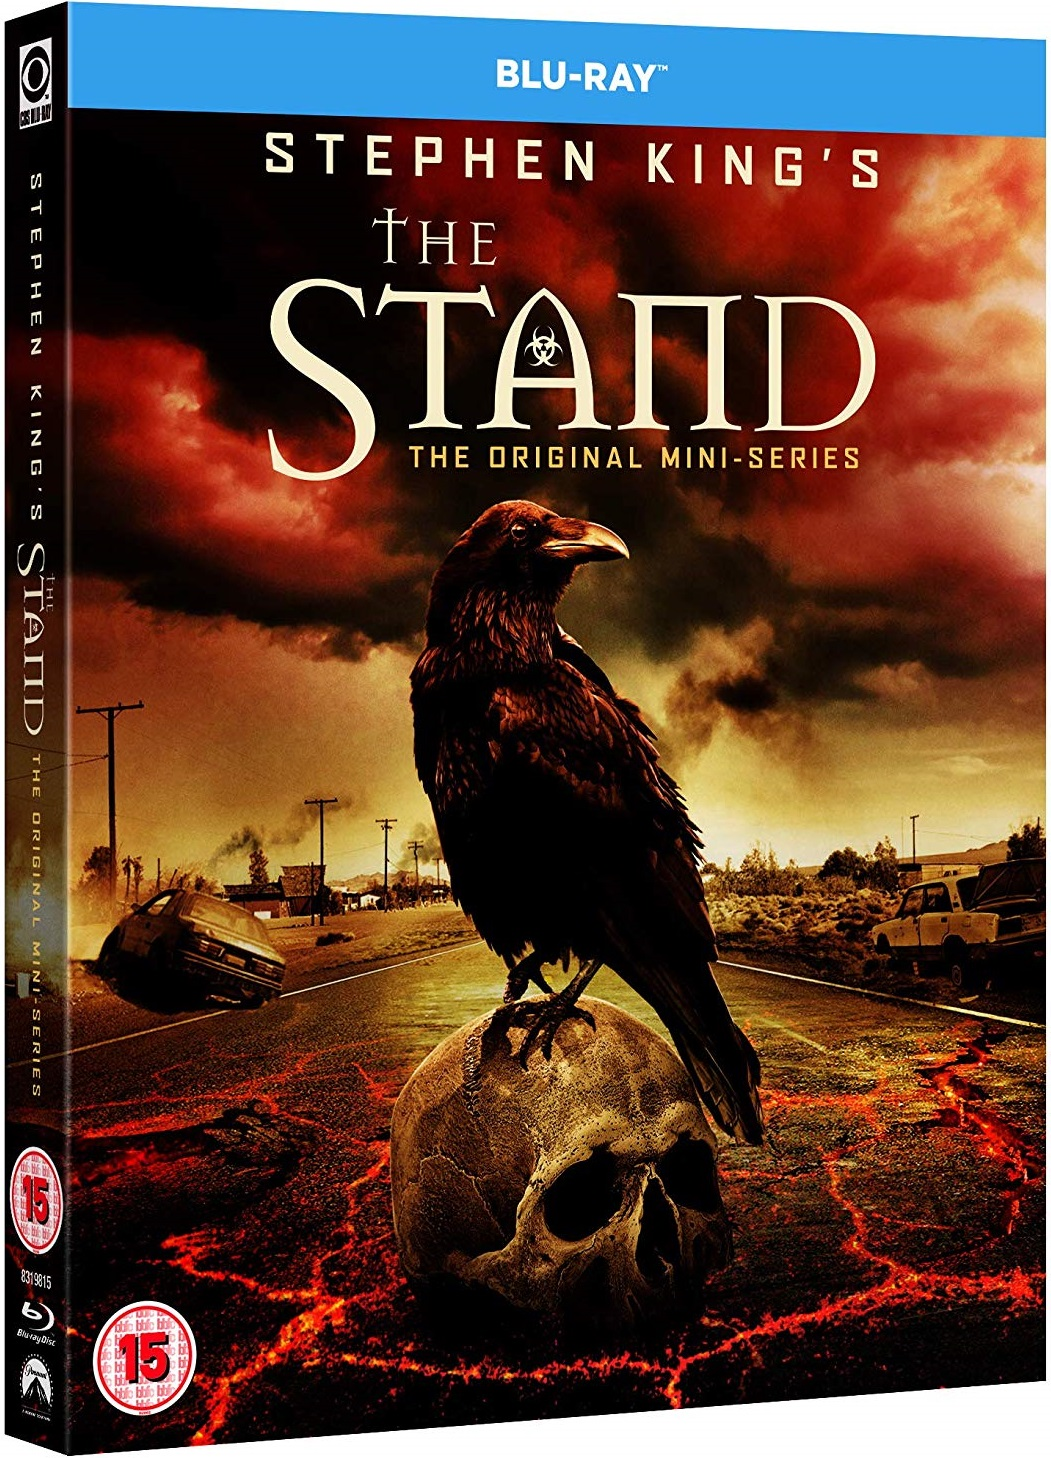 Stephen King's The Stand UK Blu-Ray